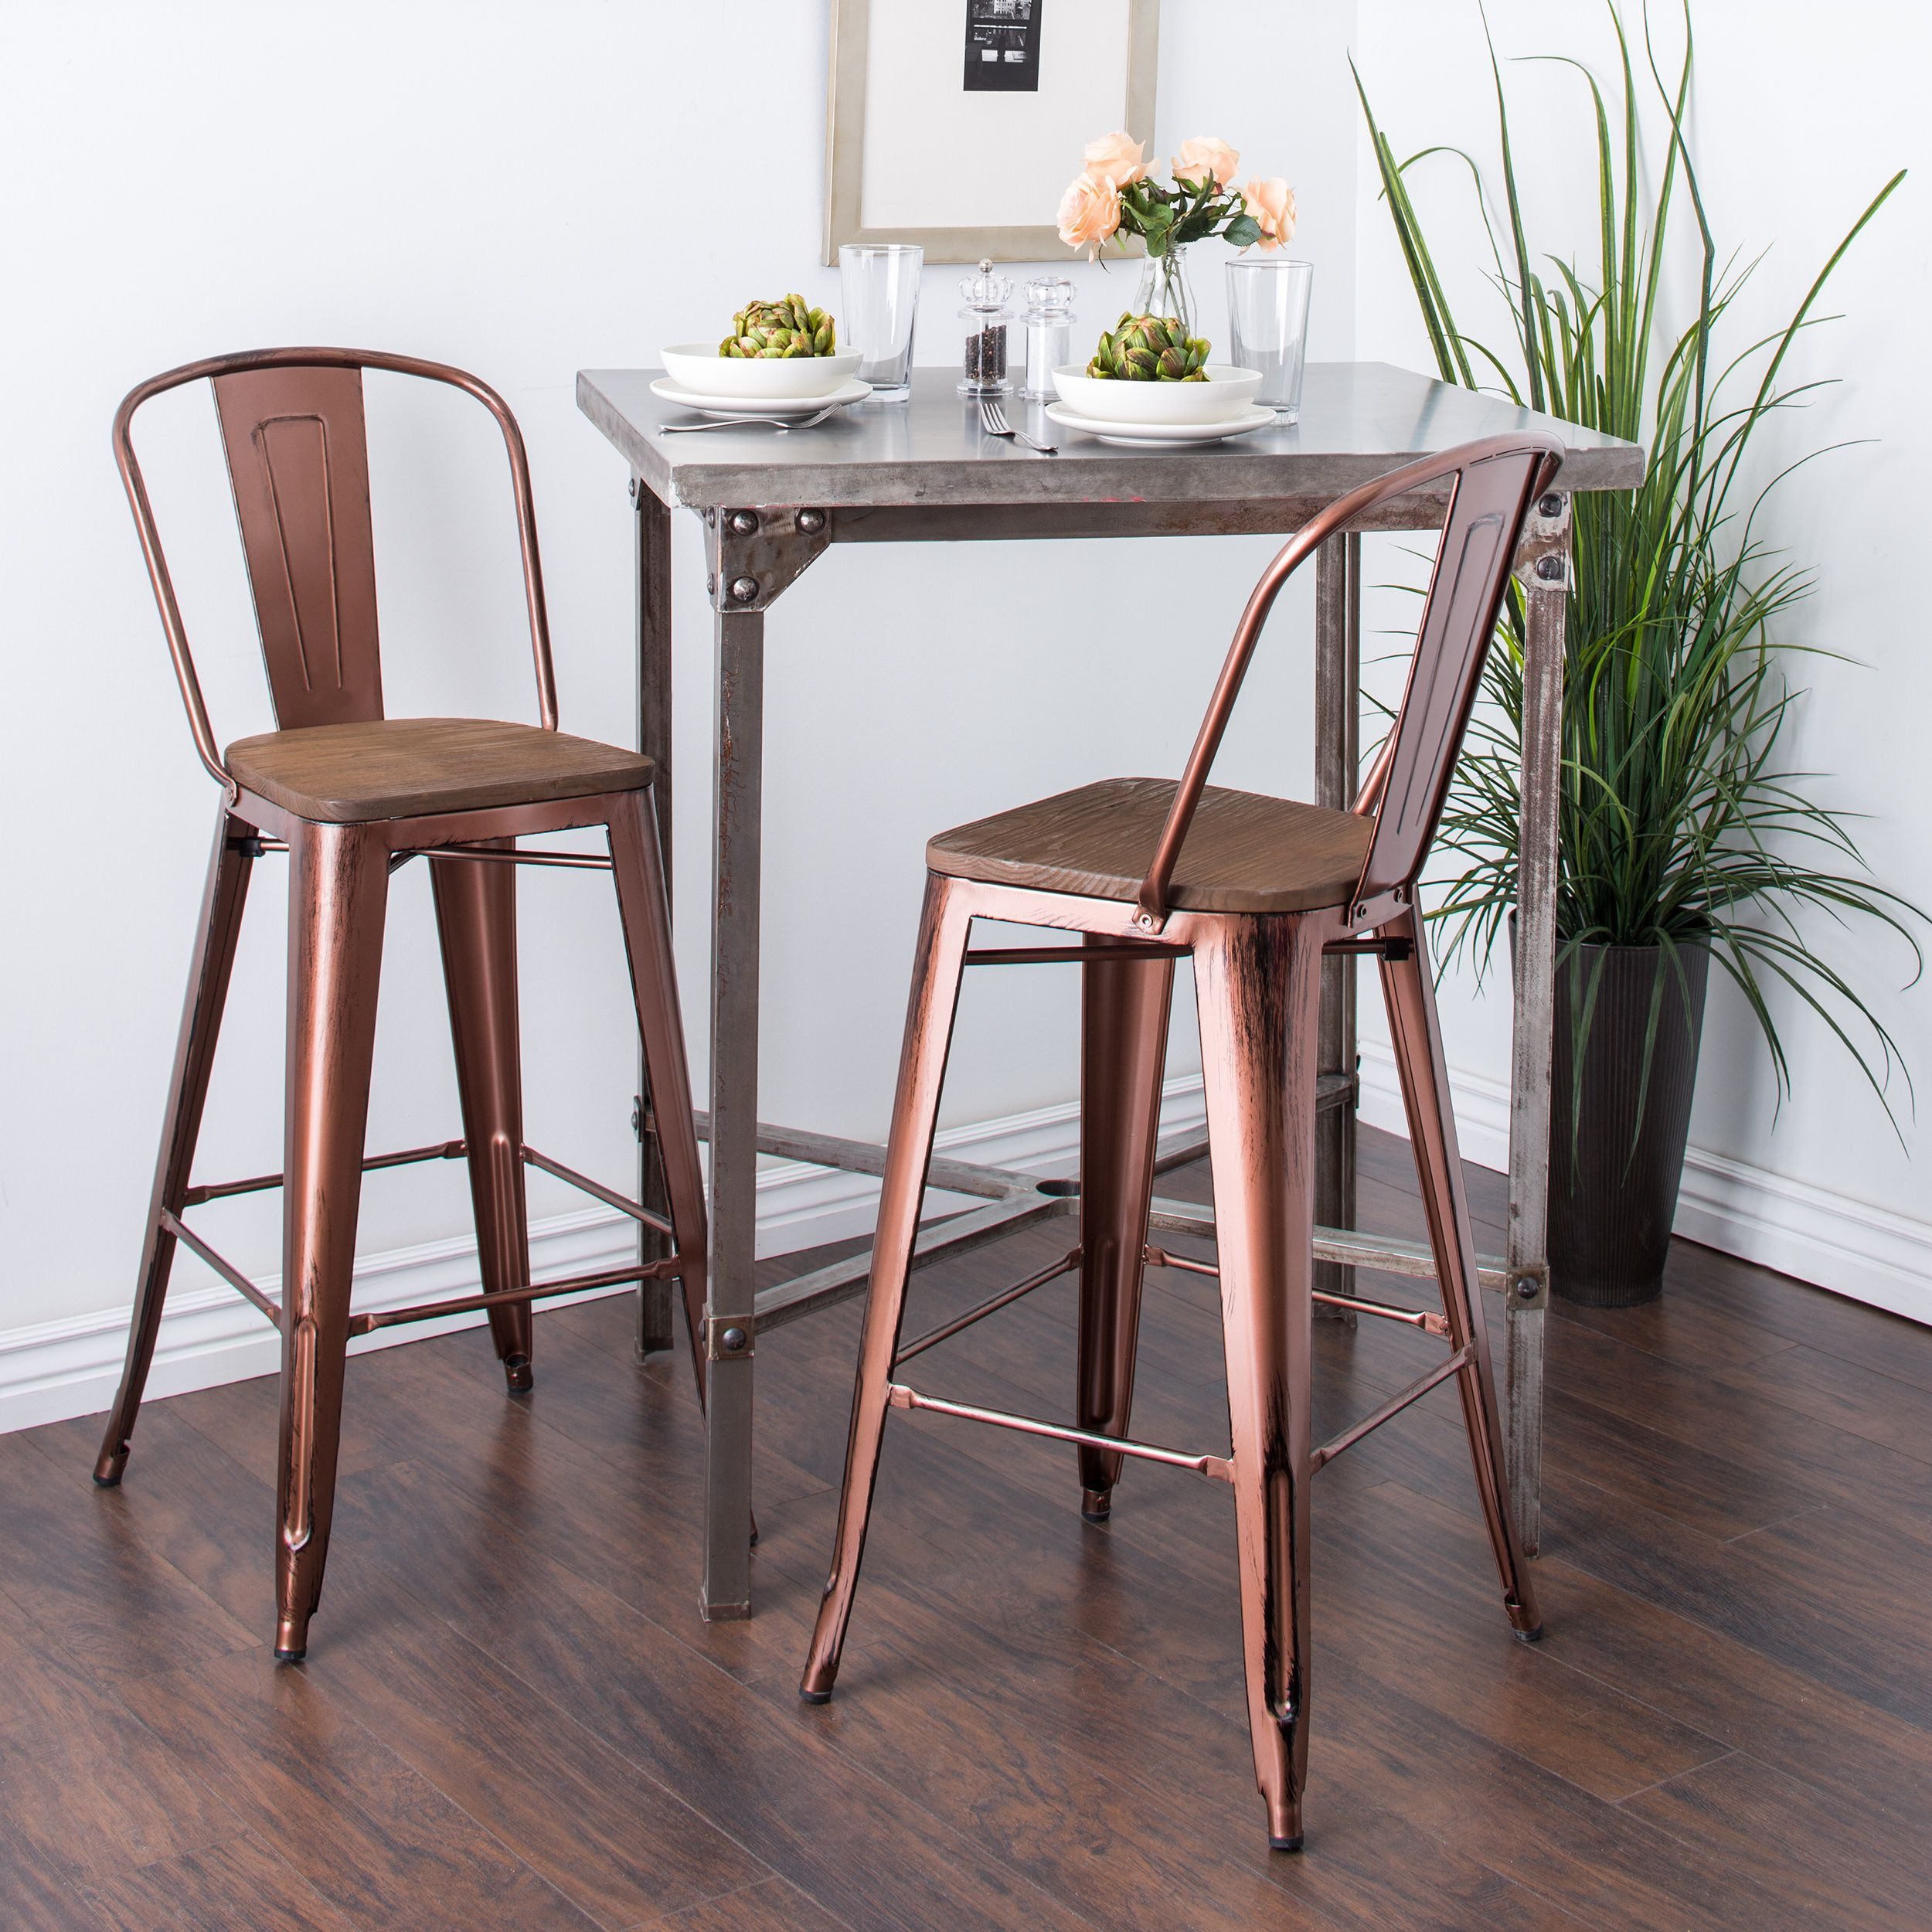 Luxury Bar Stools Rancho Mirage